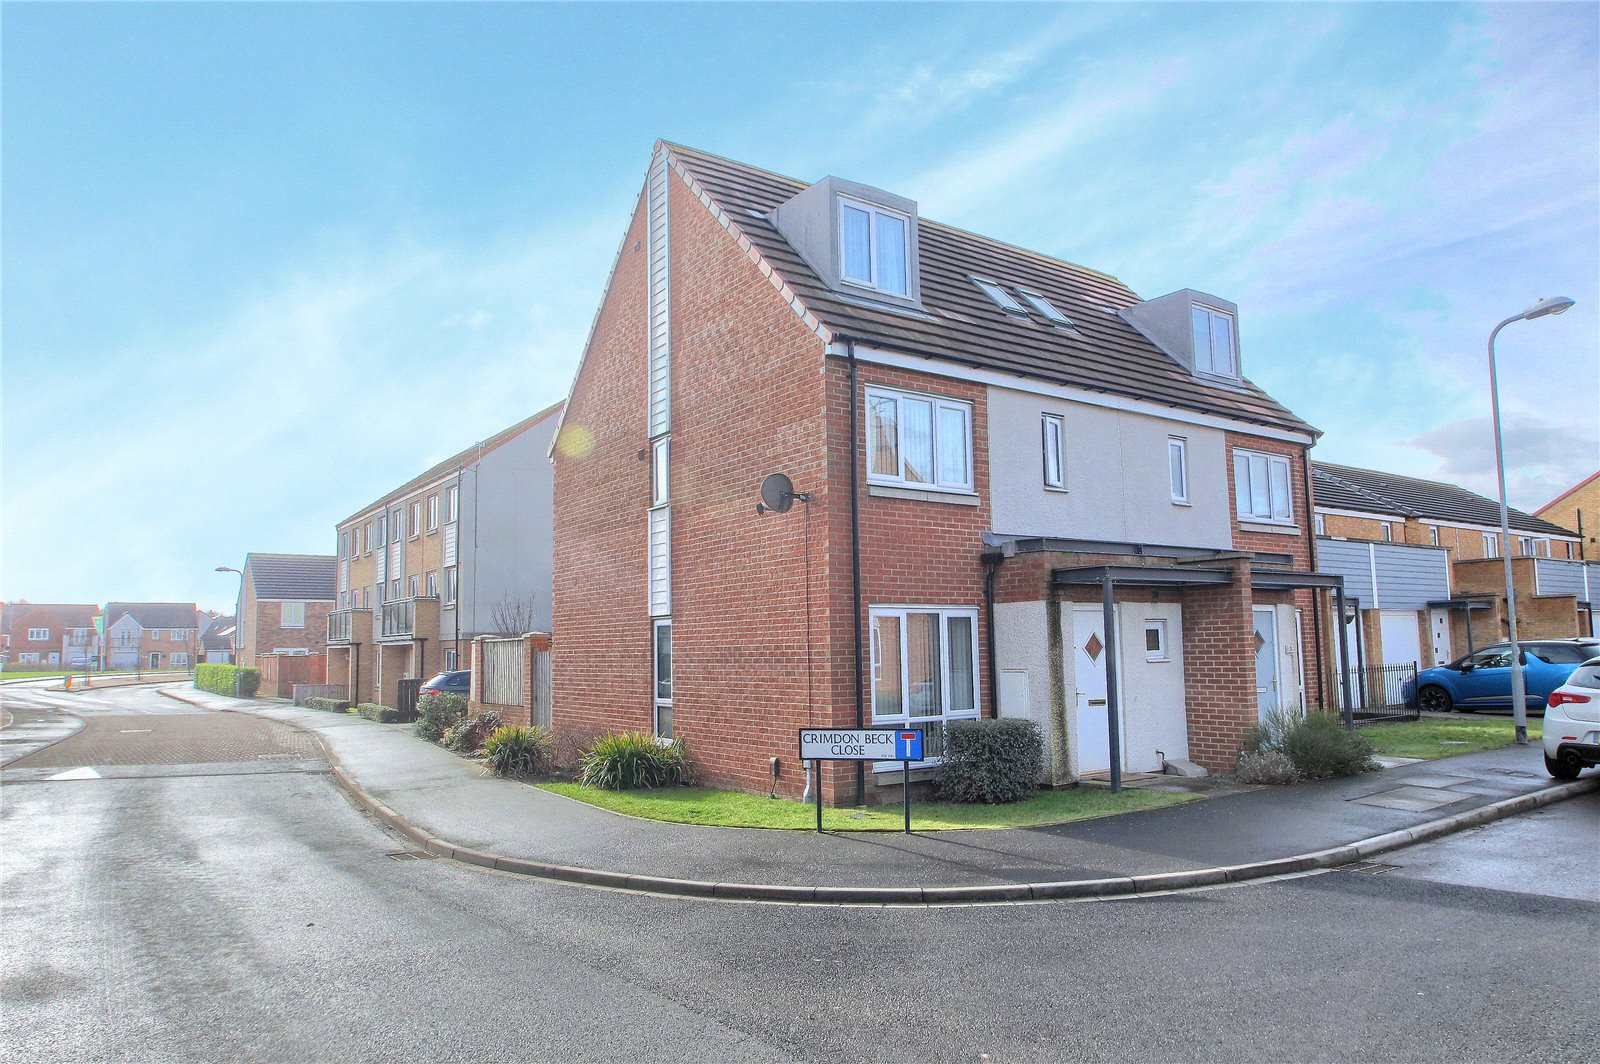 4 bed house for sale in Crimdon Beck Close, Whitewater Glade 1